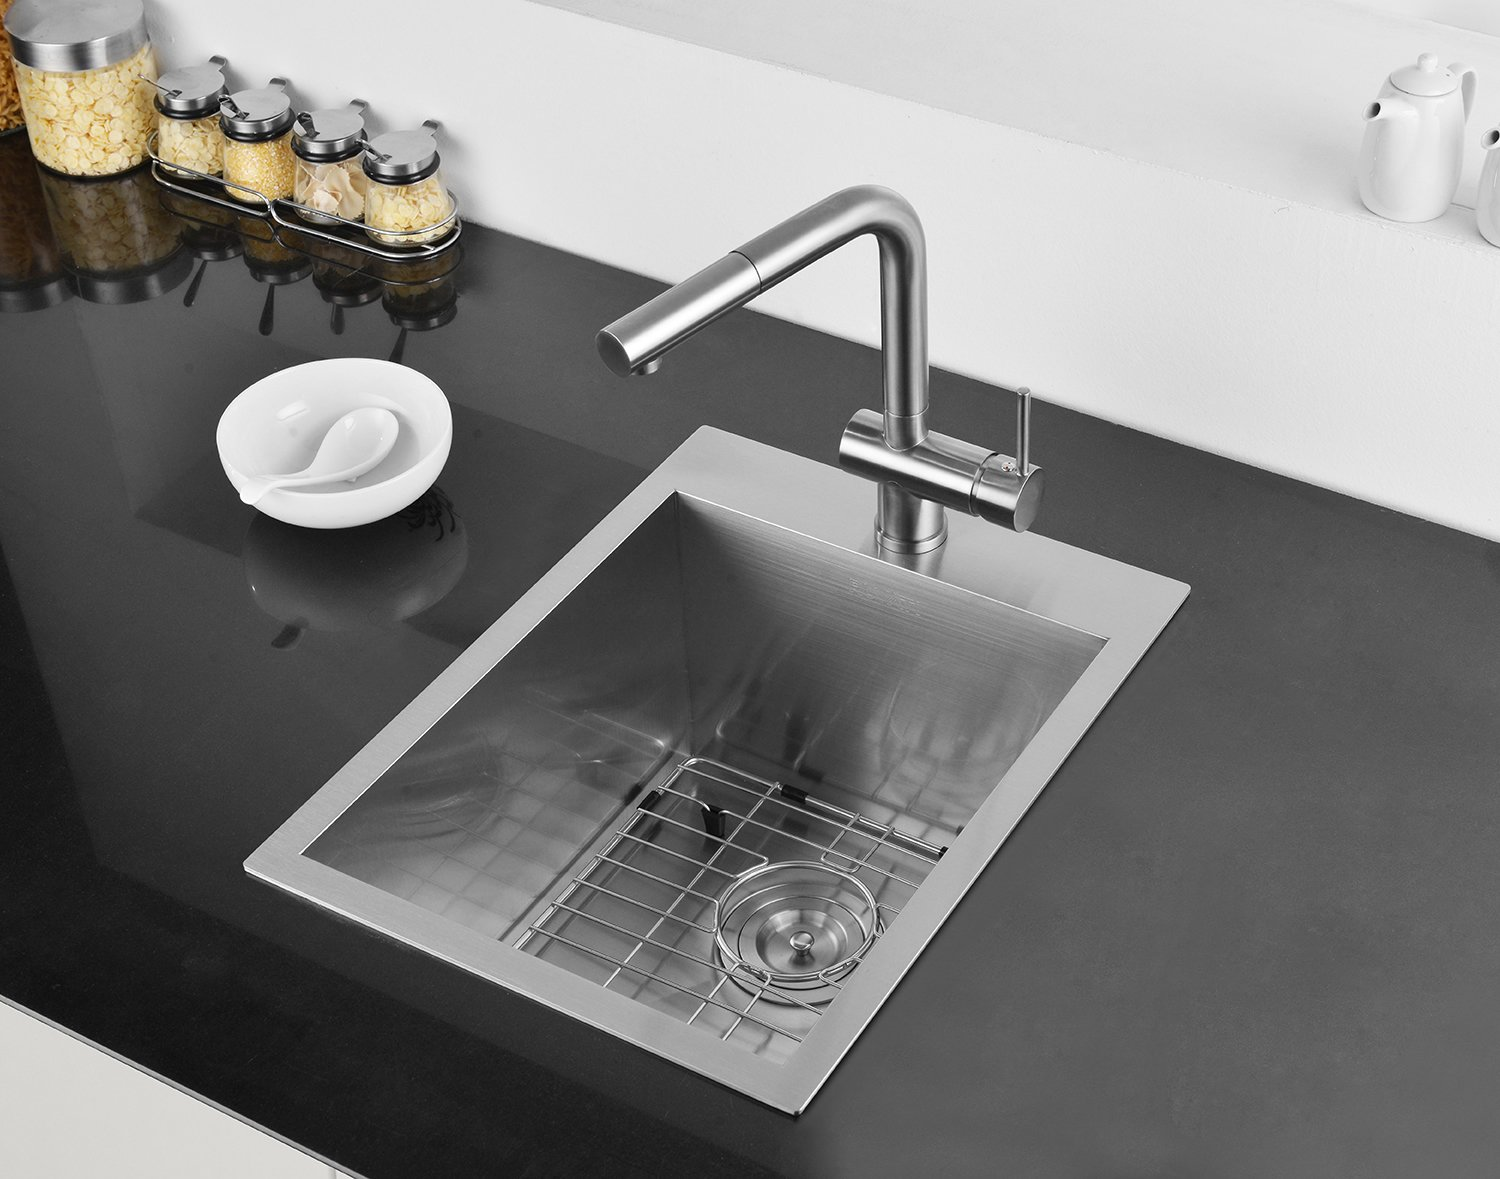 Ruvati 15 x 20 inch Drop-in Topmount Bar Prep Sink 16 Gauge Stainless Steel Single Bowl - RVH8110 by Ruvati (Image #4)